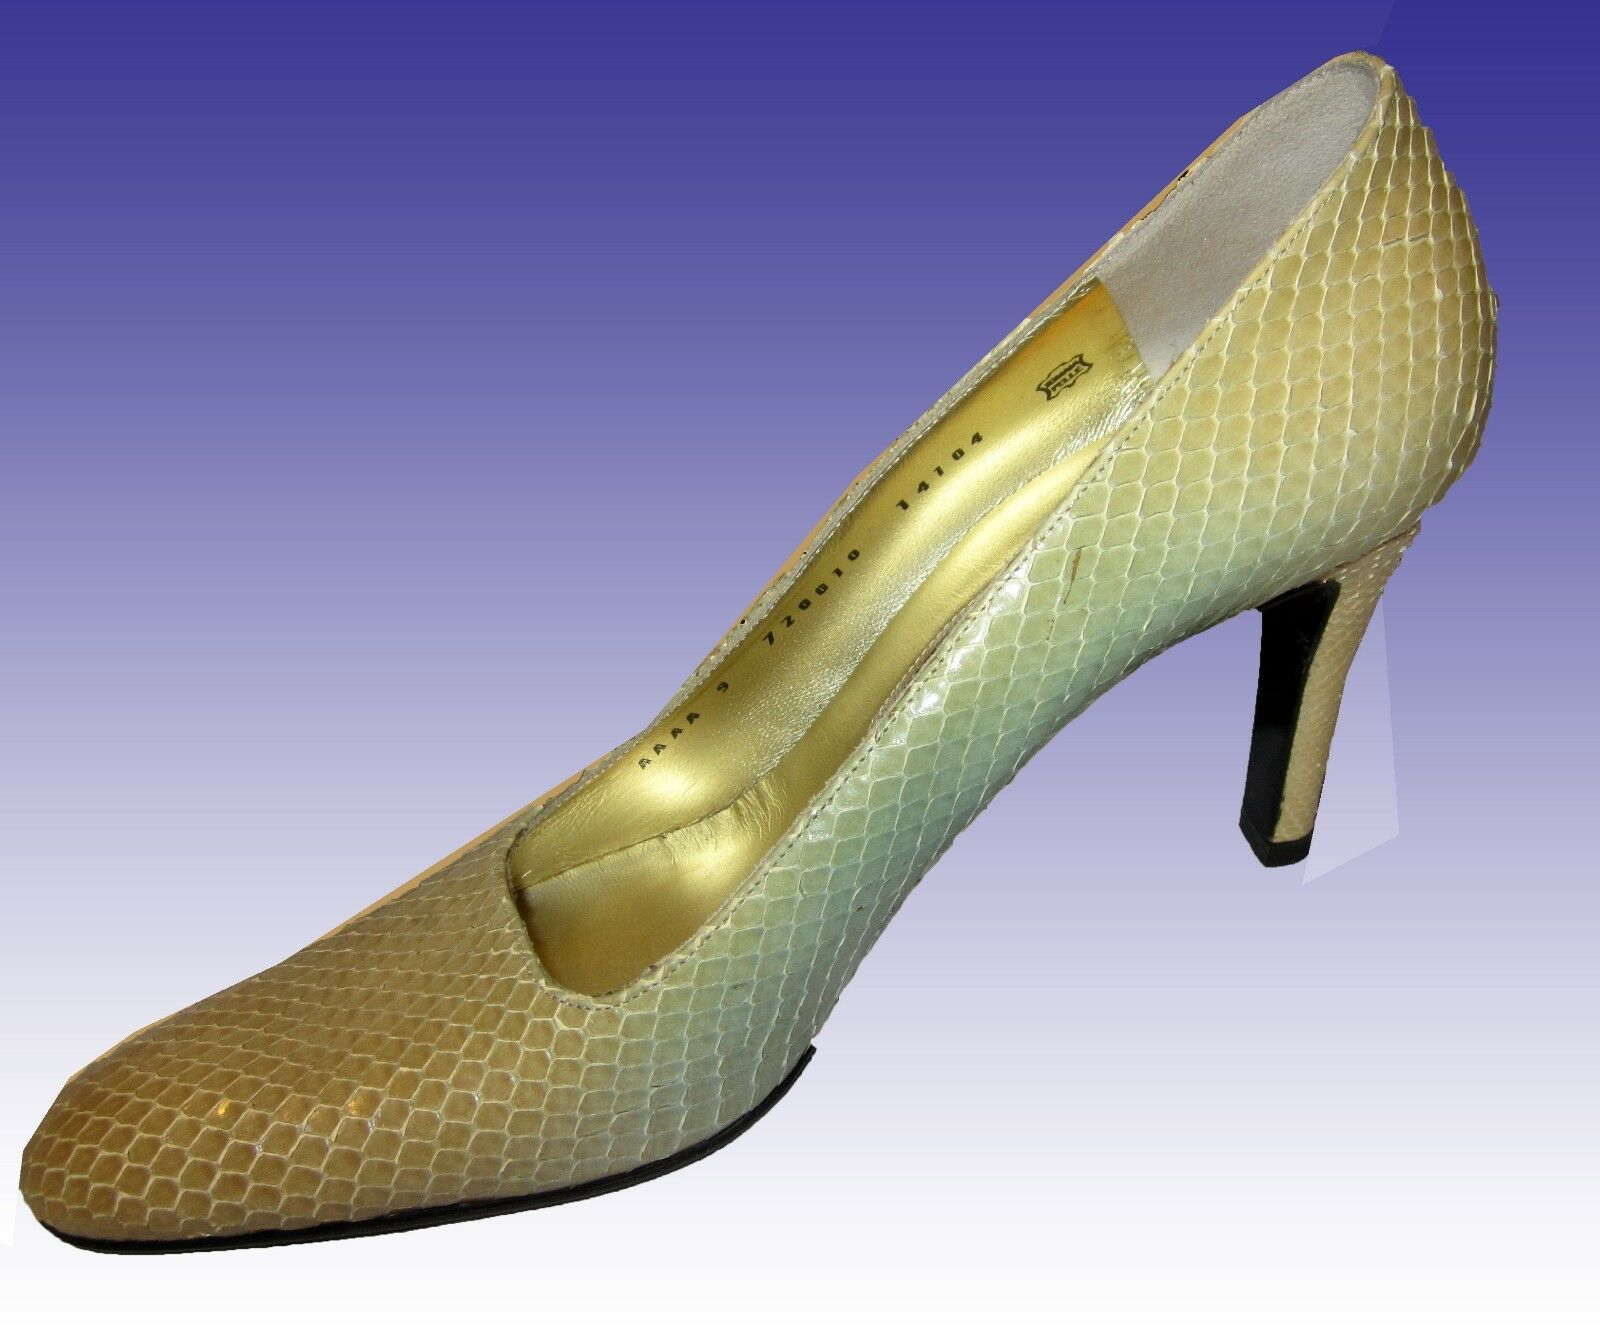 New BRUNO MAGLI COUTURE Heels 8.5AAAA ITALY Snake Pastel Gradient MUST SEE